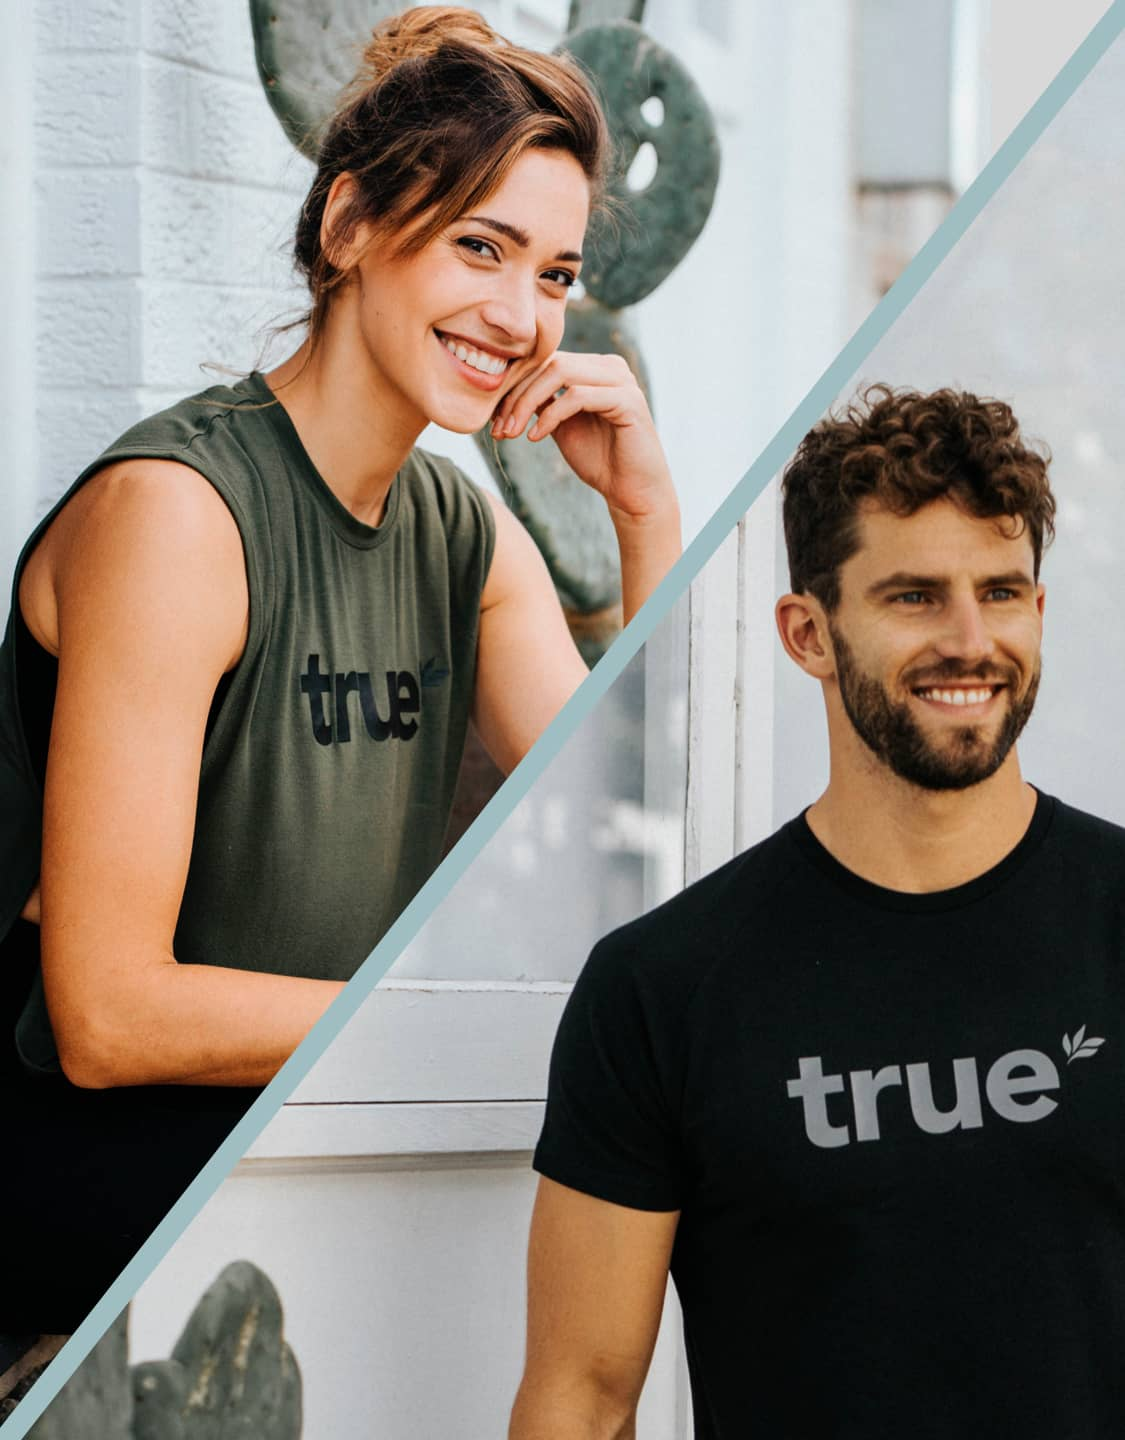 Guy and Girl in True Apparel